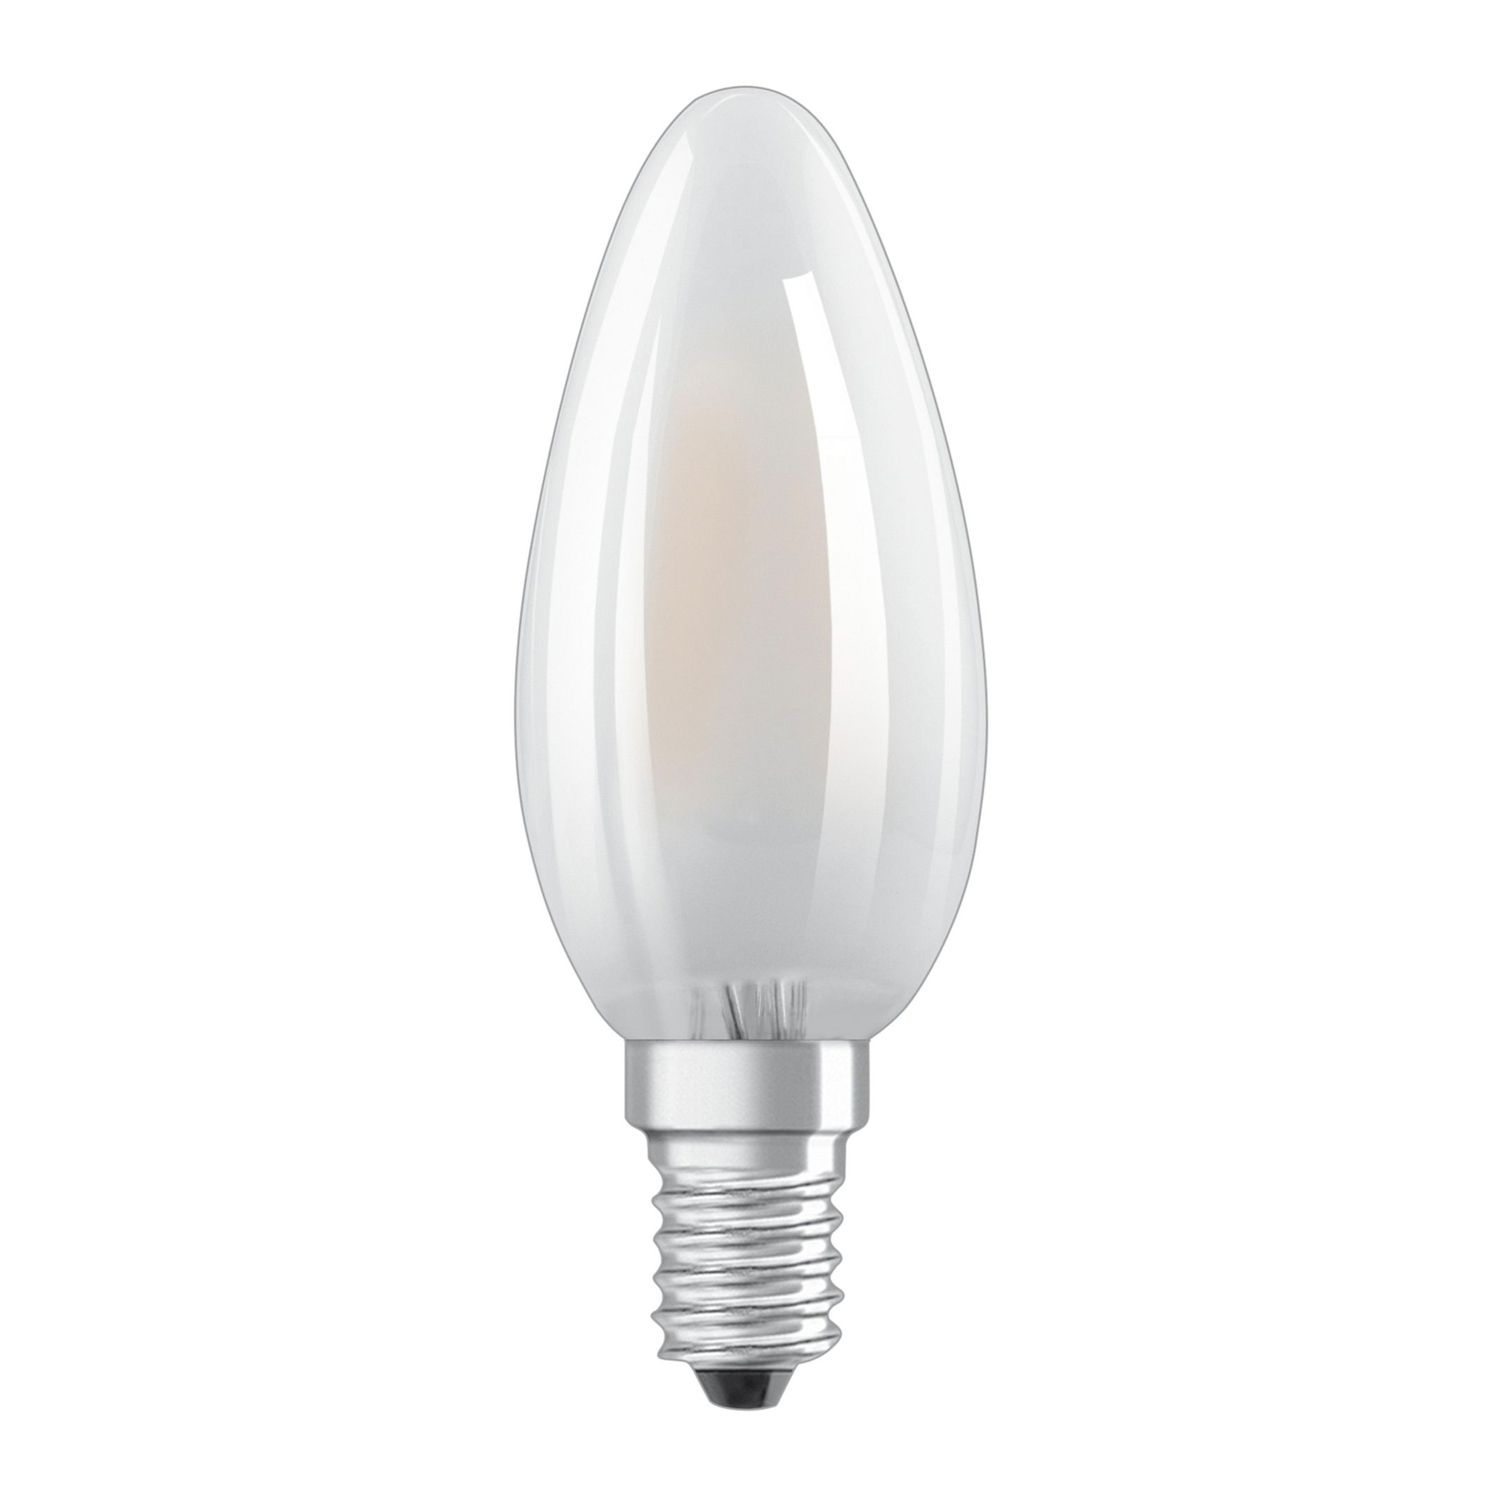 Osram LED Retrofit Classic E14 B40 4W 865 470lm Frosted | Daylight - Replaces 40W